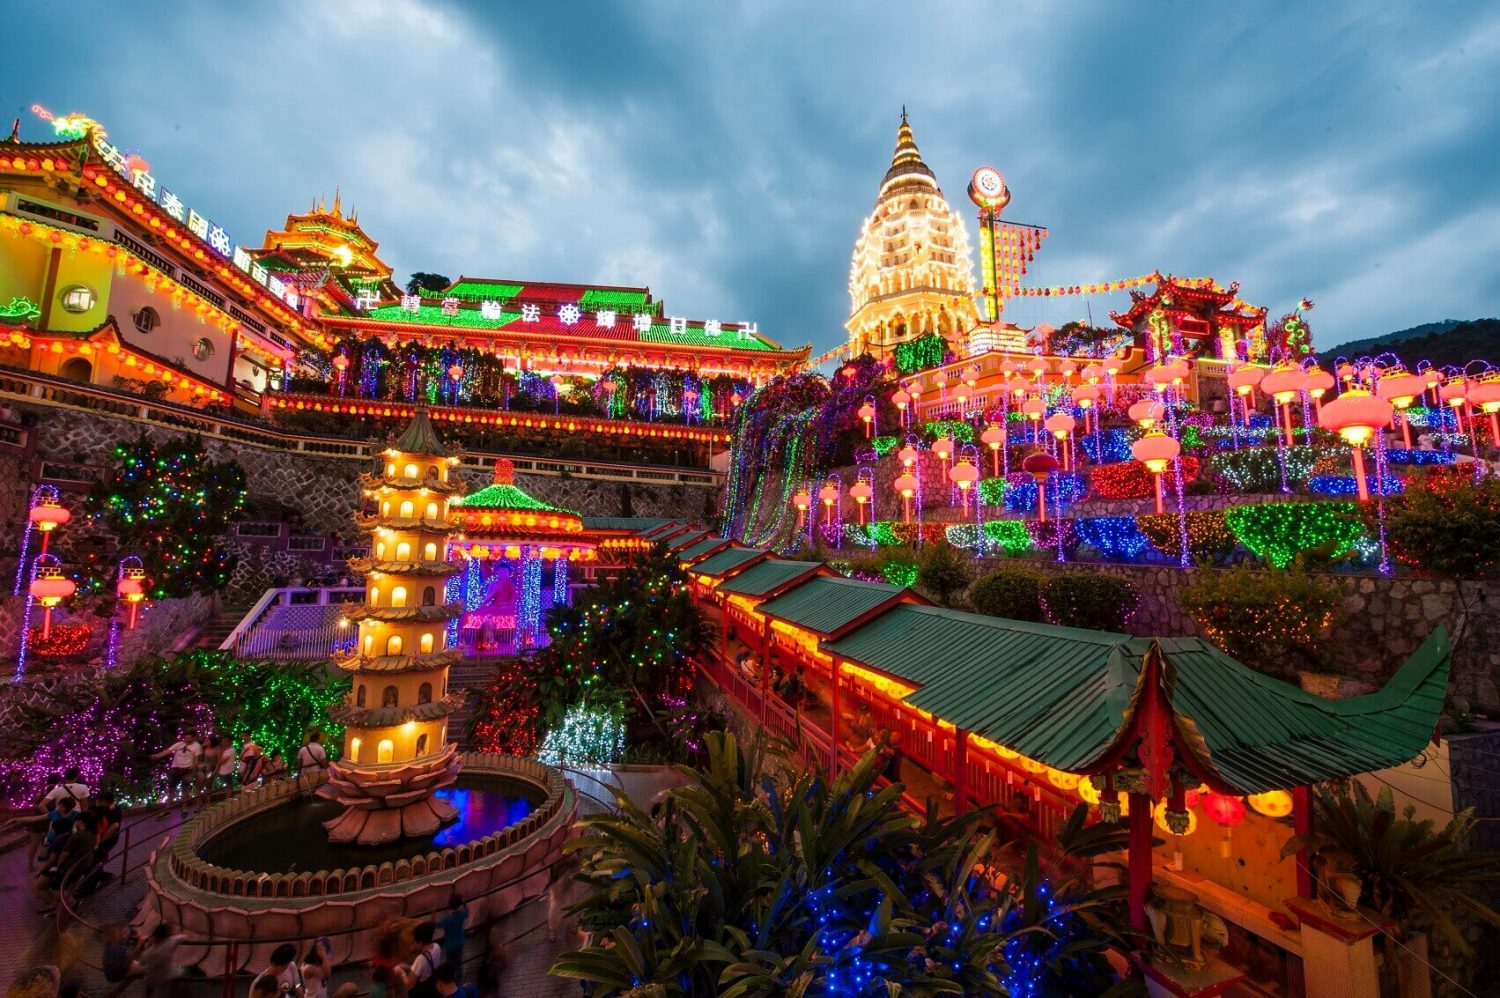 KEK LOK SI DISPLAY OF LIGHTS - PENANG